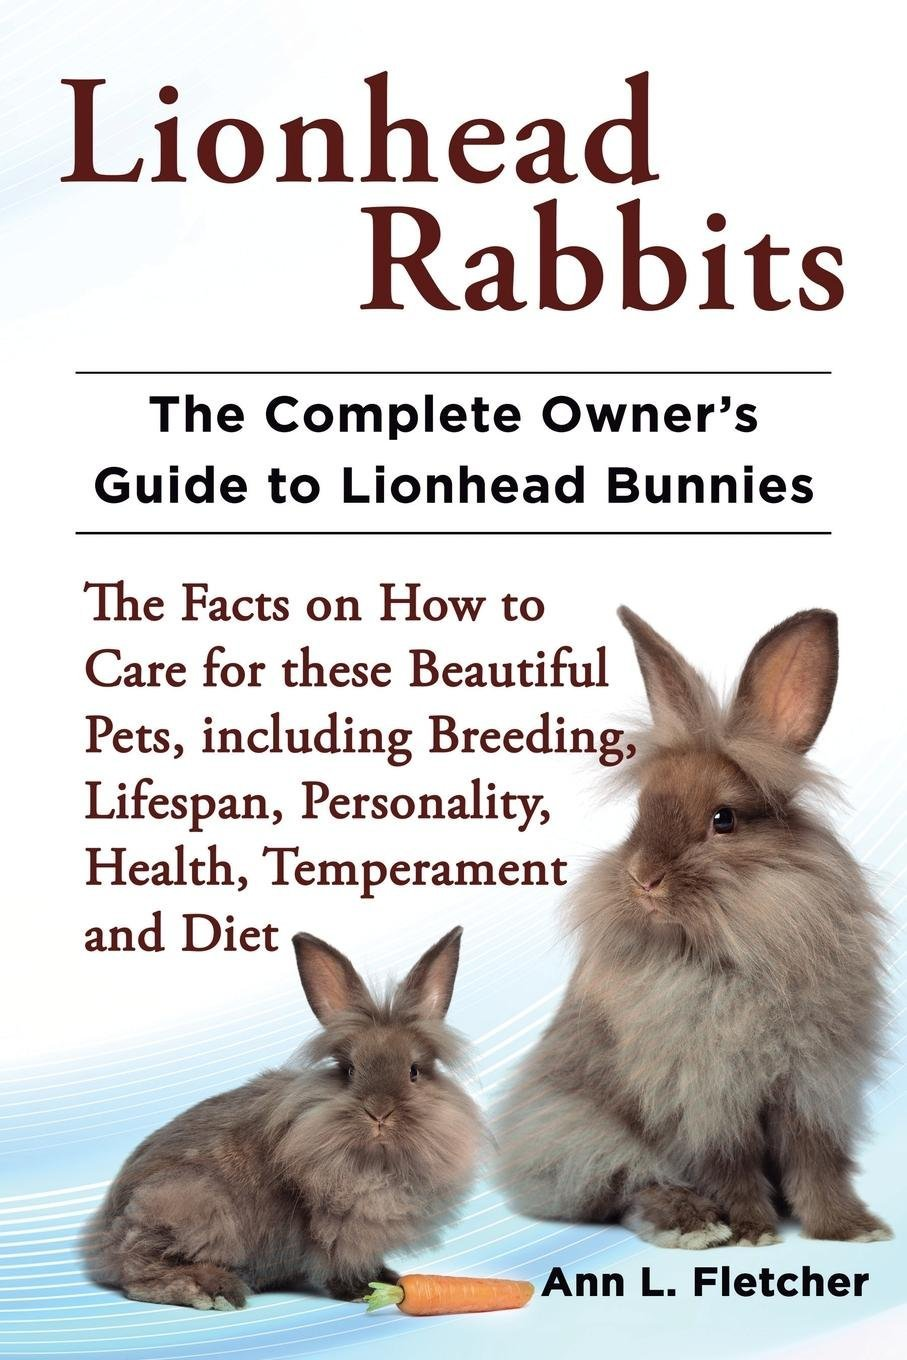 Download Lionhead Rabbits The Complete Owner's Guide to Lionhead Bunnies The Facts on How to Care for these Beautiful Pets, including Breeding, Lifespan, Personality, Health, Temperament and Diet pdf